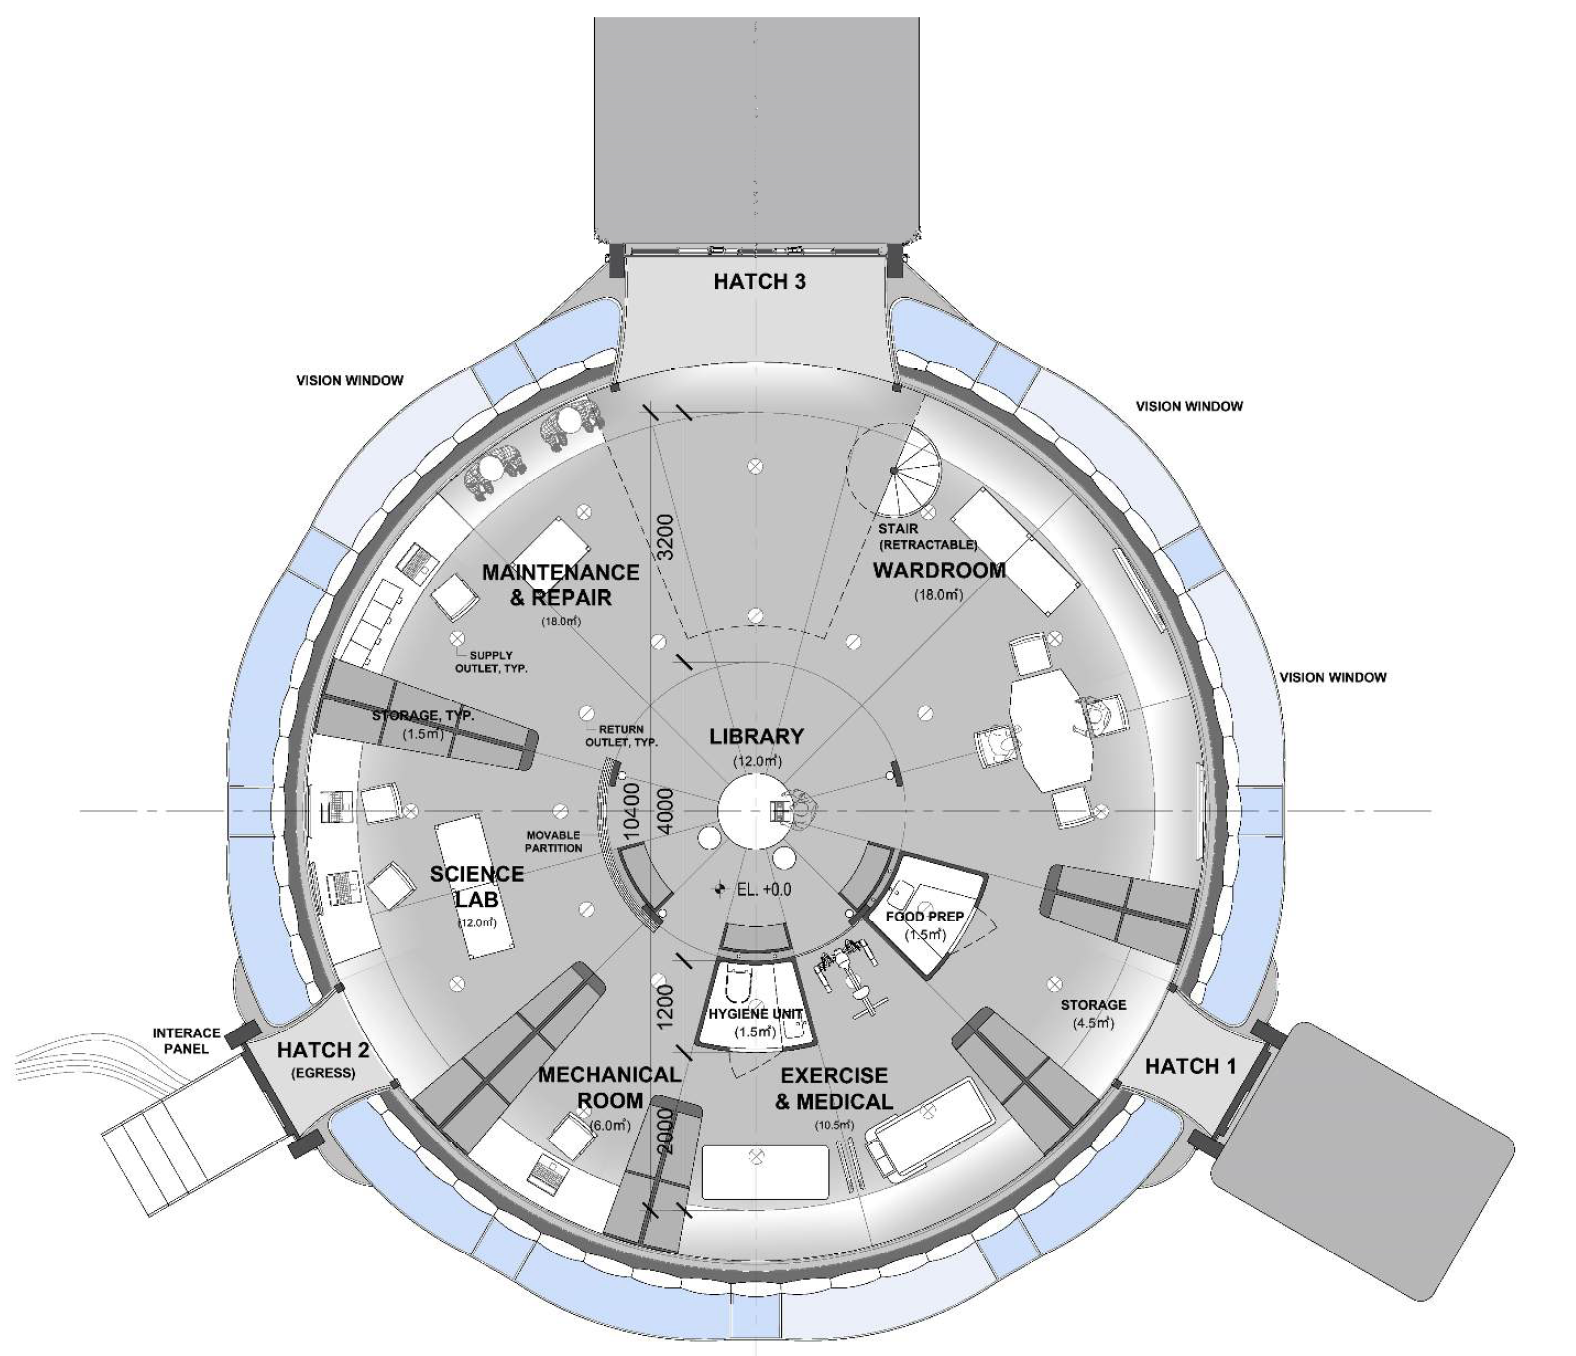 First floor plan and program areas